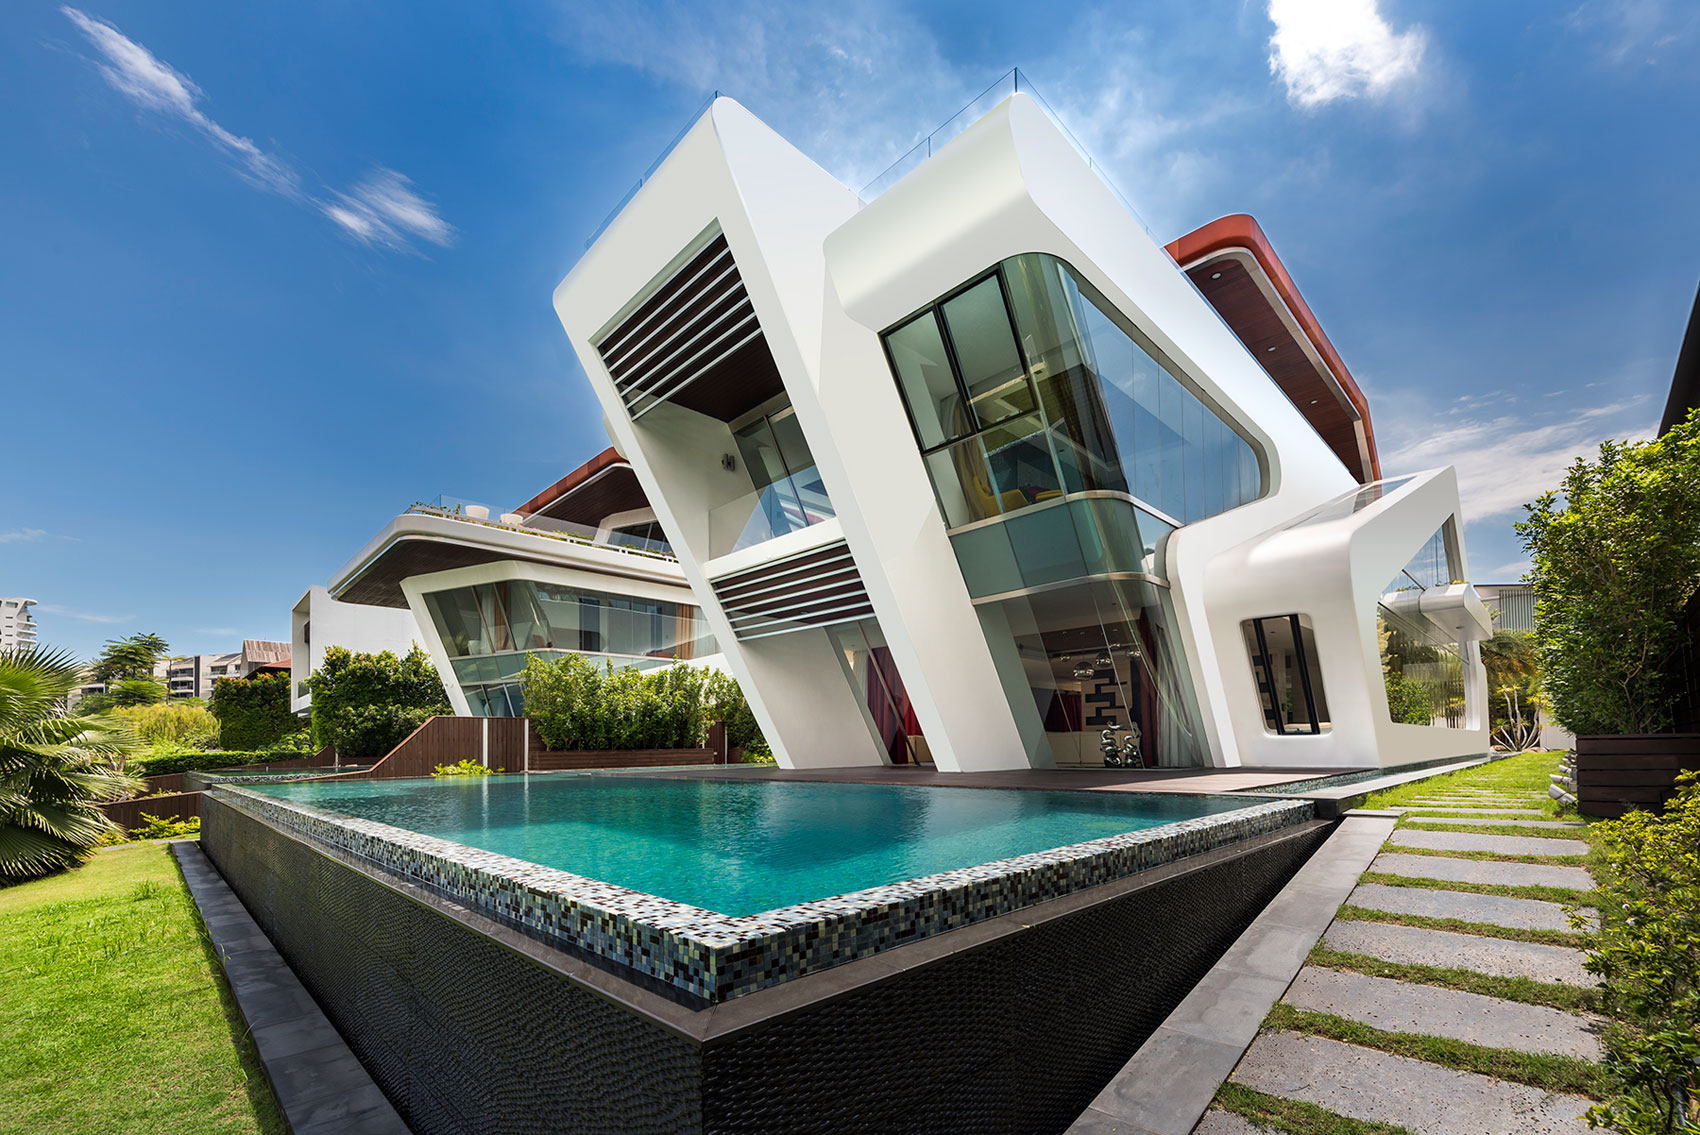 Mercurio design lab create a modern villa in singapore for Architecture moderne